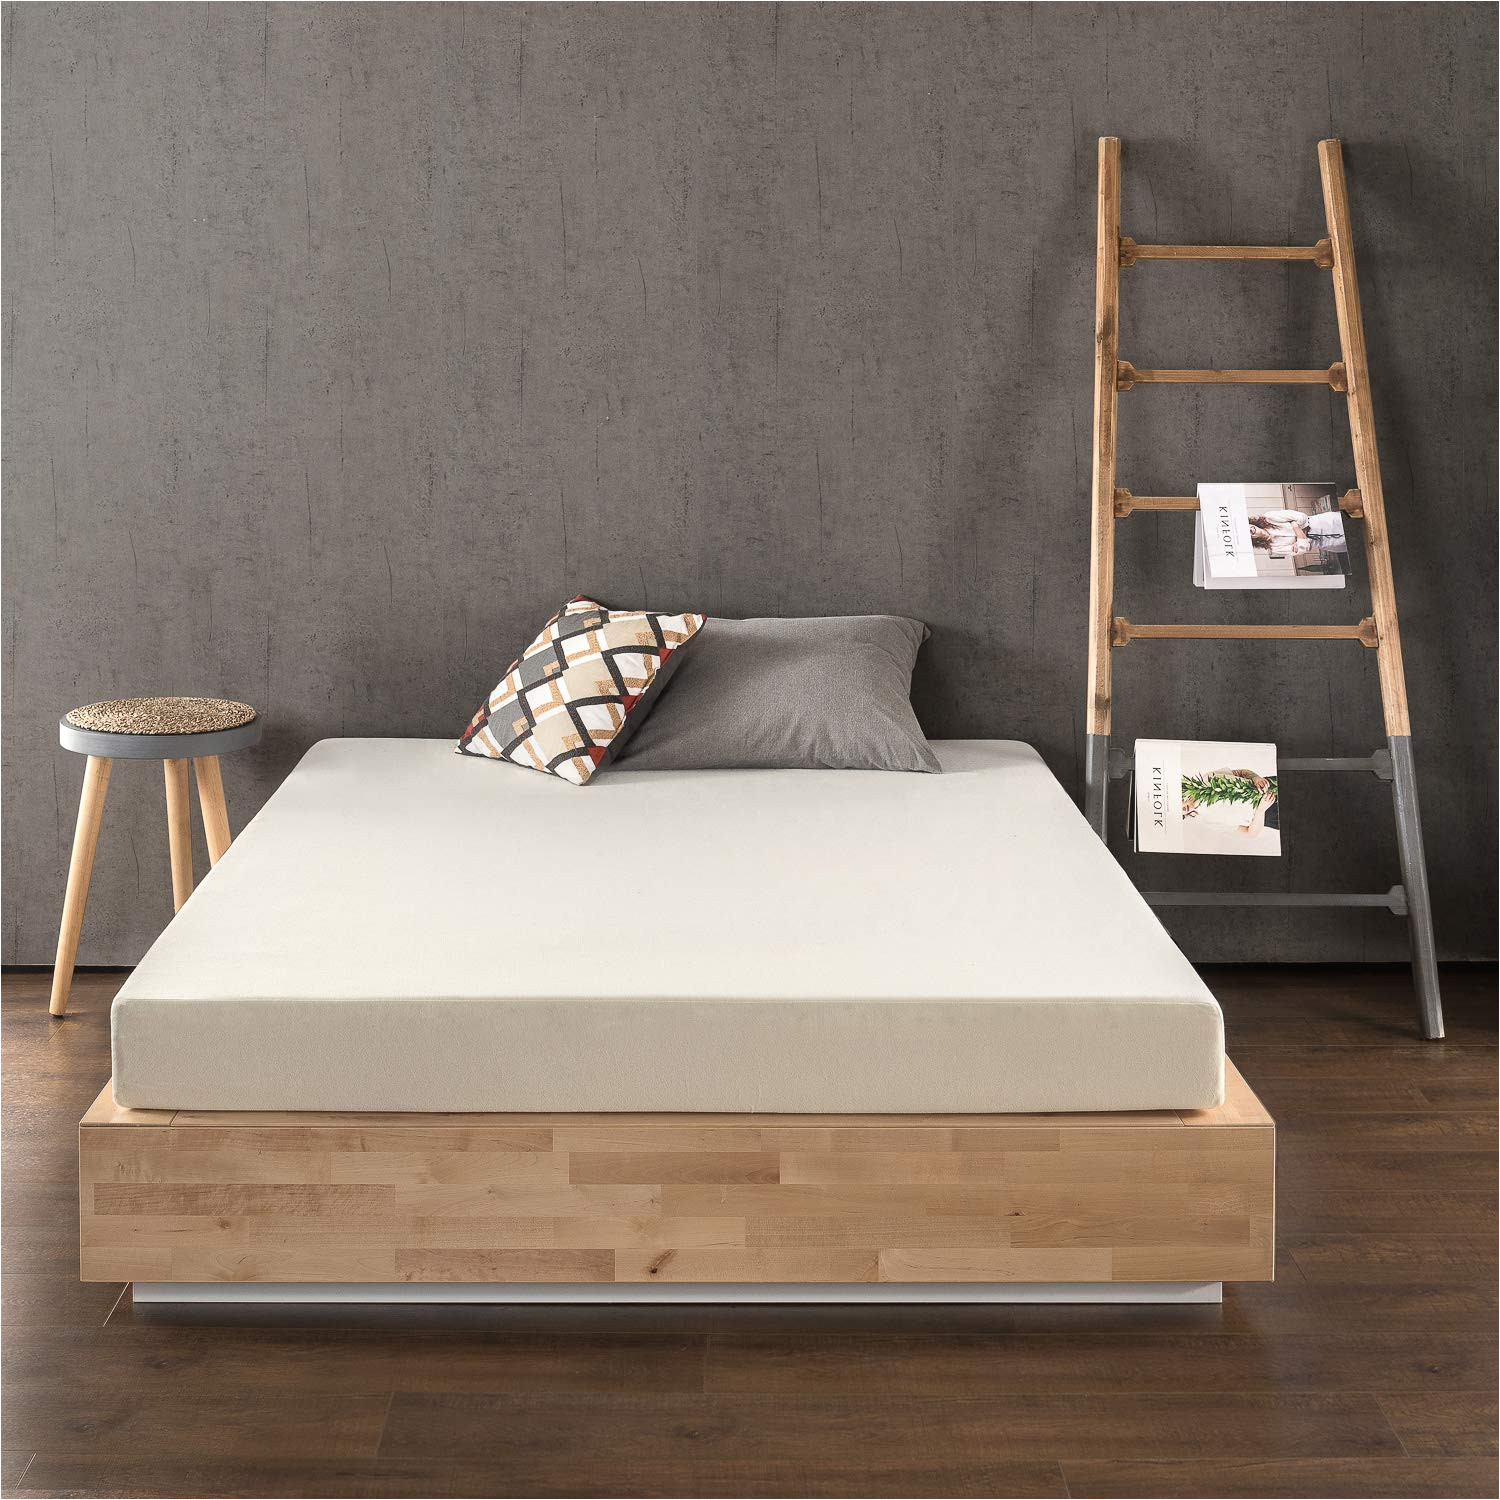 Sleep Number Bed Weight Capacity Amazon Com Best Price Mattress 6 Inch Memory Foam Mattress Full